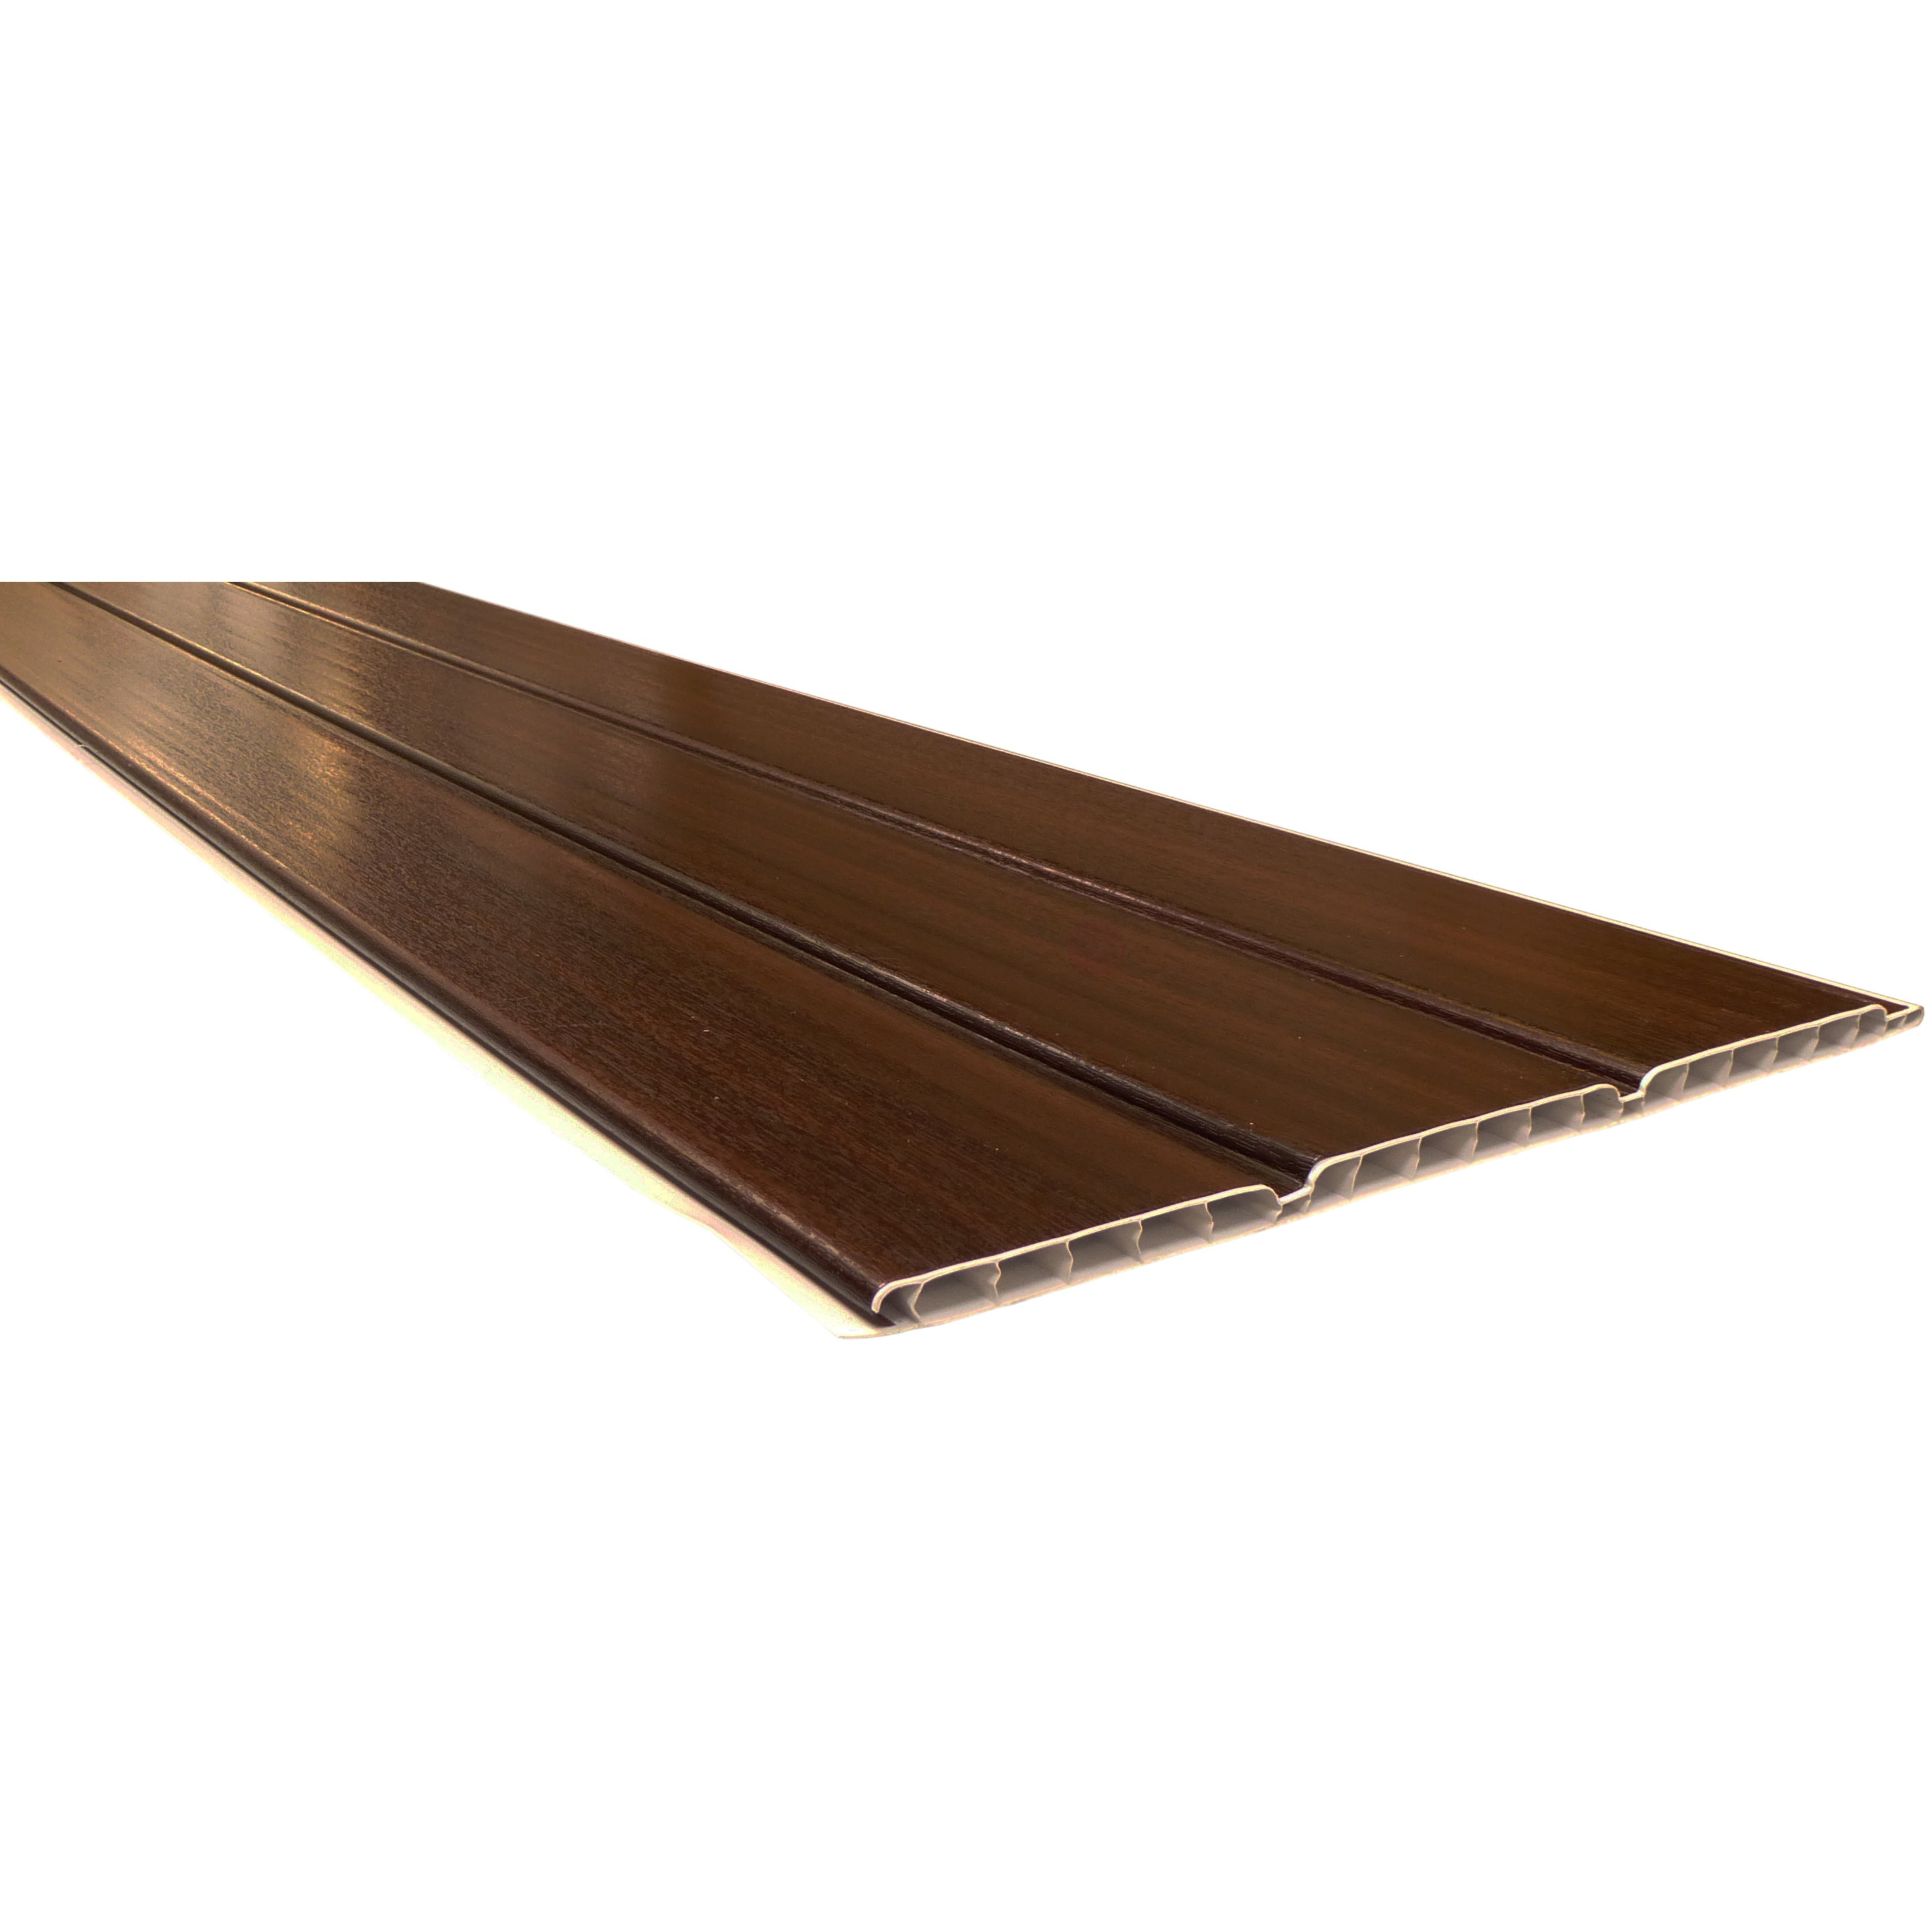 Freefoam 10mm Hollow Soffit Board - Woodgrain Mahogany, 300mm, 5 metre